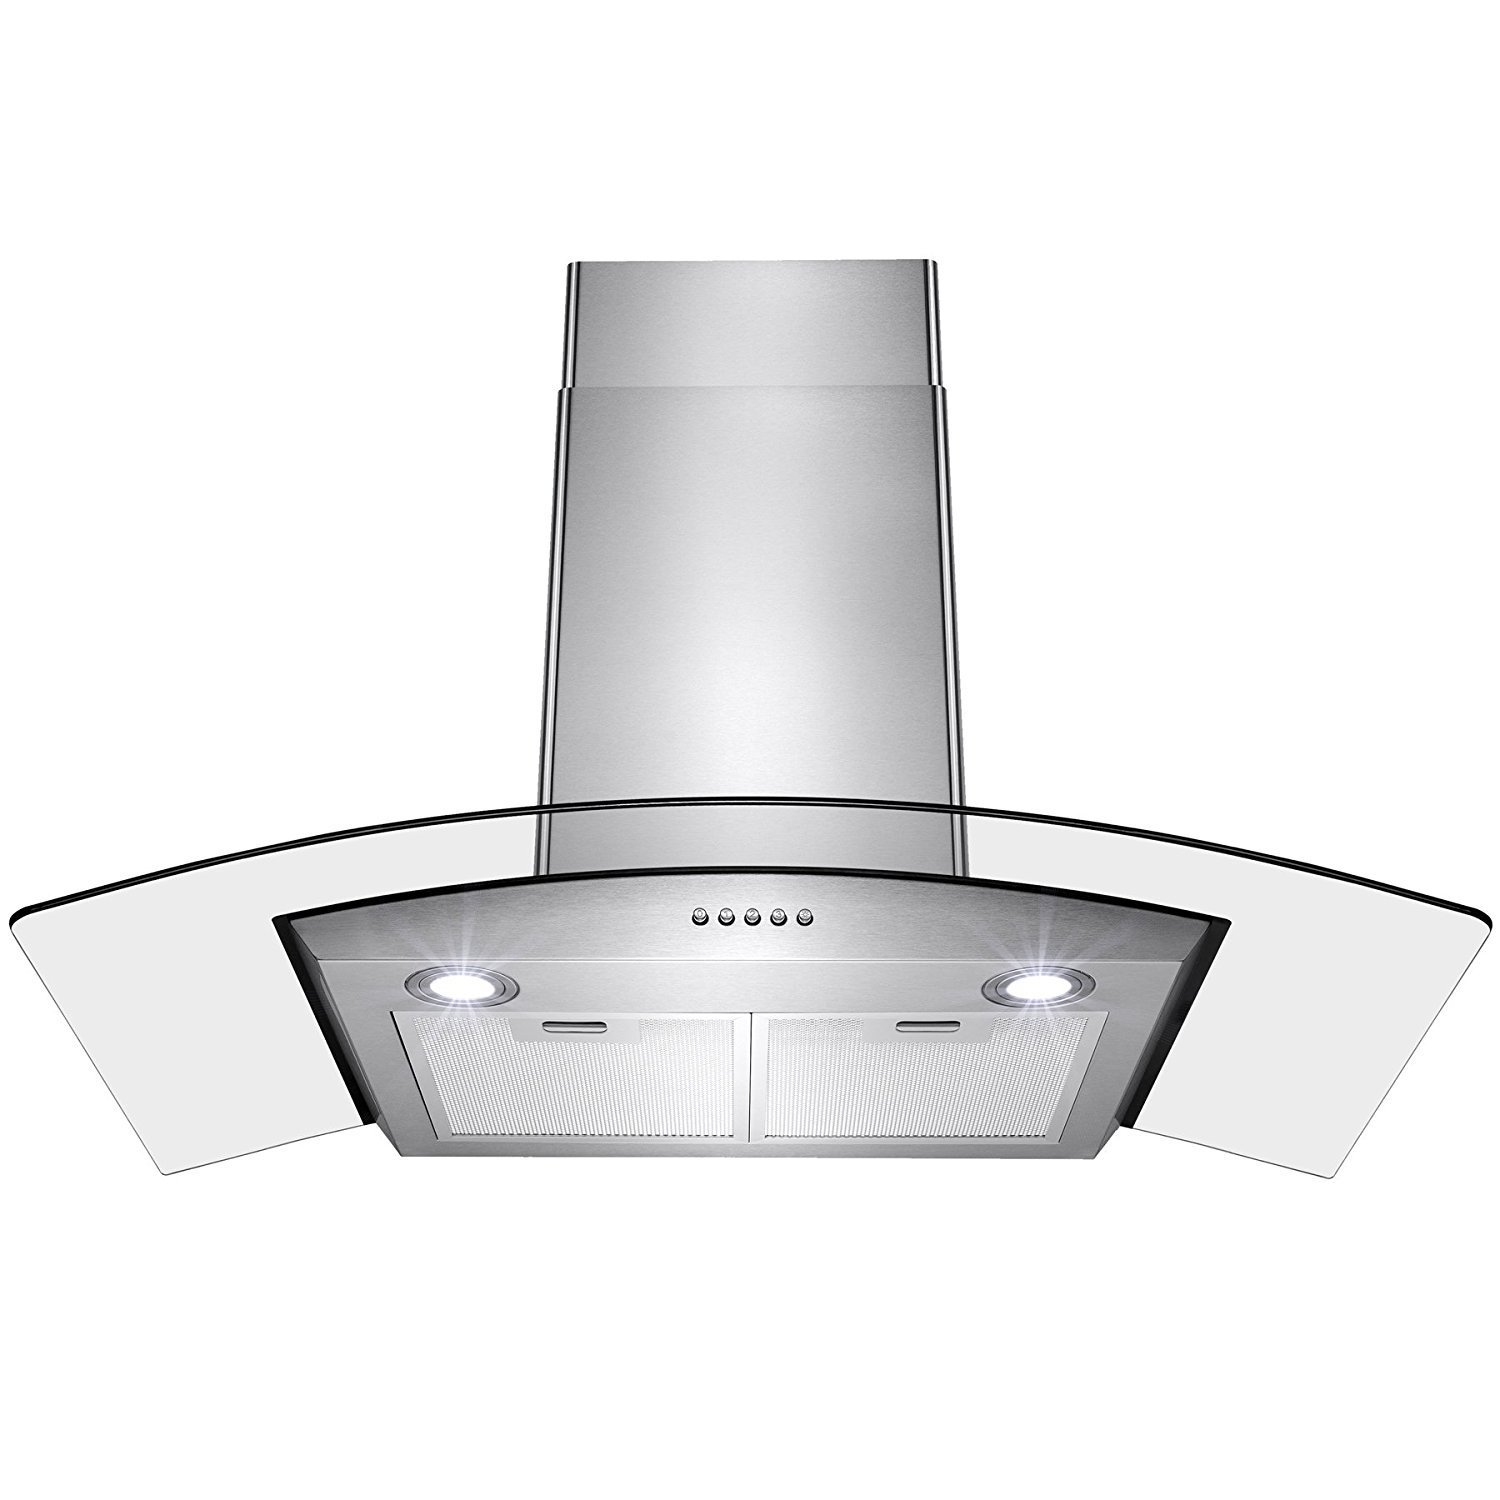 Perfetto Kitchen and Bath 36'' Convertible Wall Mount Range Hood in Stainless Steel with LEDs, Push Controls & Tempered Glass